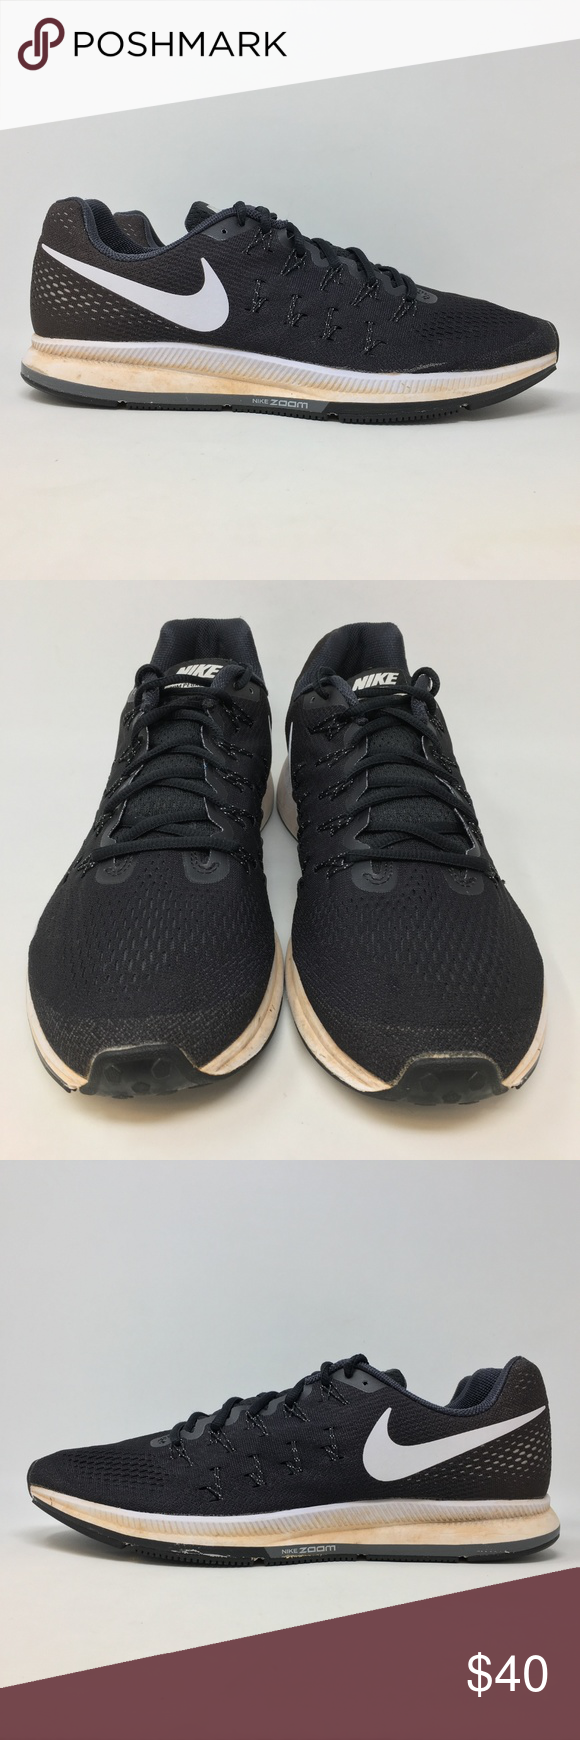 huge selection of c0514 ed997 Nike Air Zoom Pegasus 33 Mens 14 Running Shoe L10 Nike Air Zoom Pegasus 33  Mens Size 14 Black White Running Shoes L10 Shoes are in u…   My Posh Picks